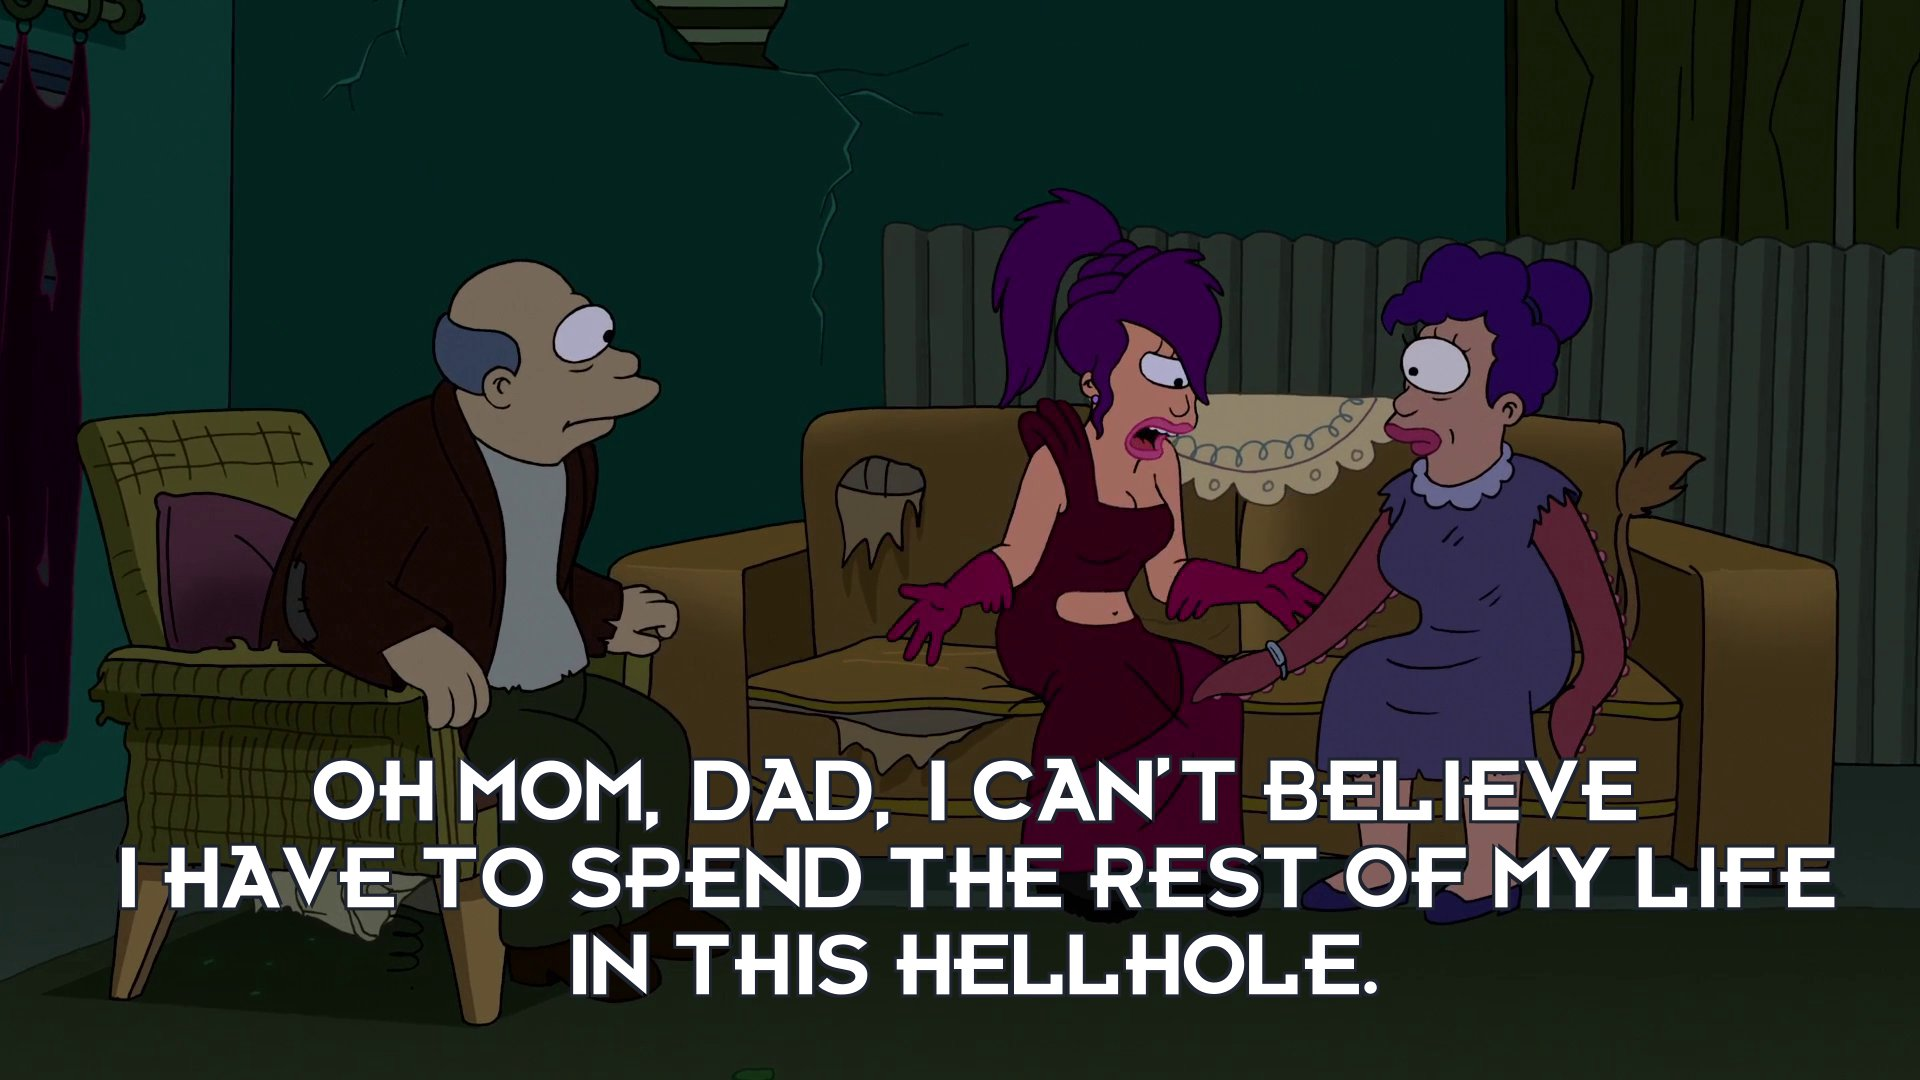 Turanga Leela: Oh Mom, Dad, I can't believe I have to spend the rest of my life in this hellhole.